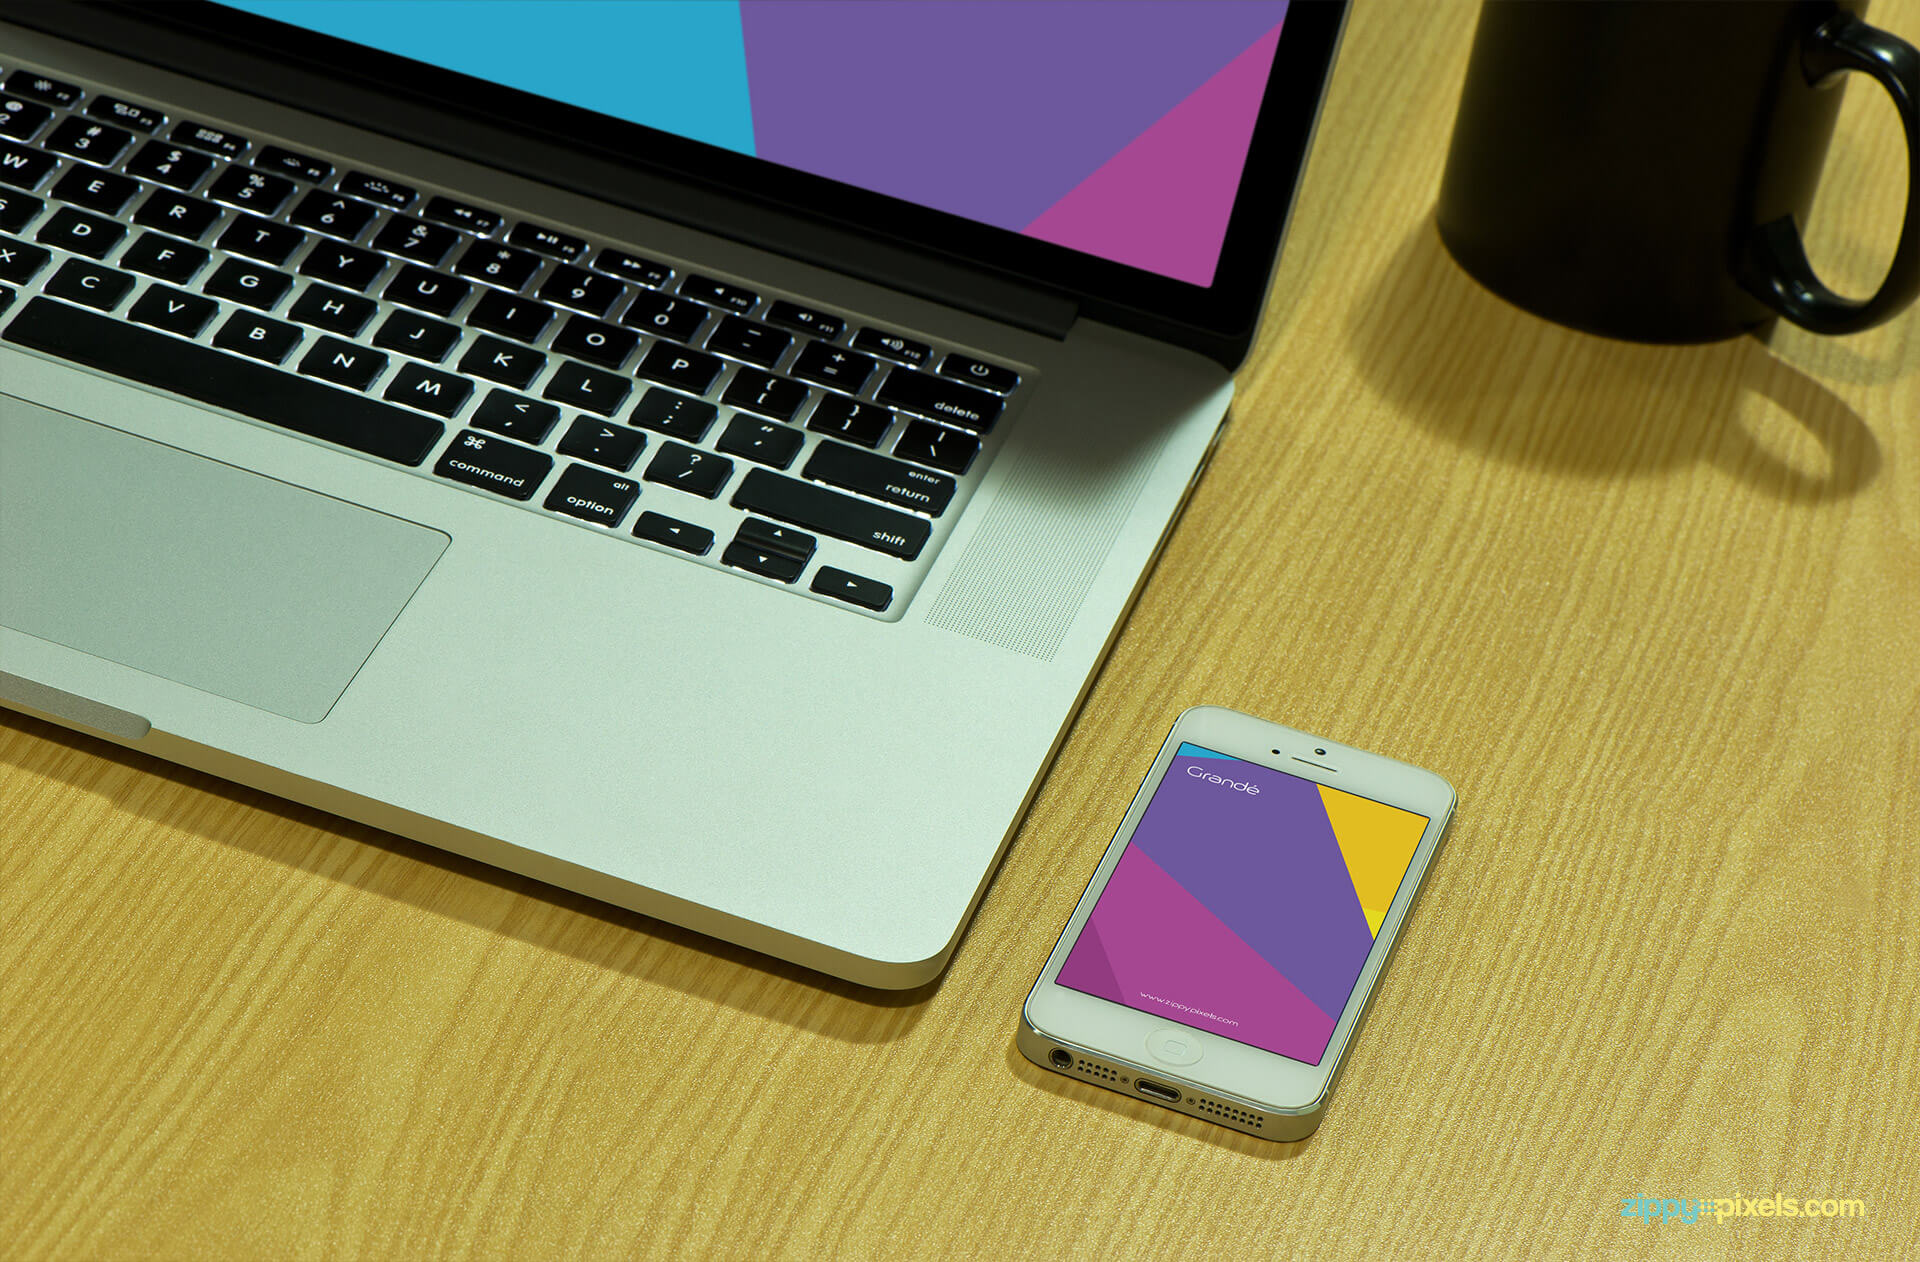 iPhone Mockup shows iPhone lying on table with Macbook Pro